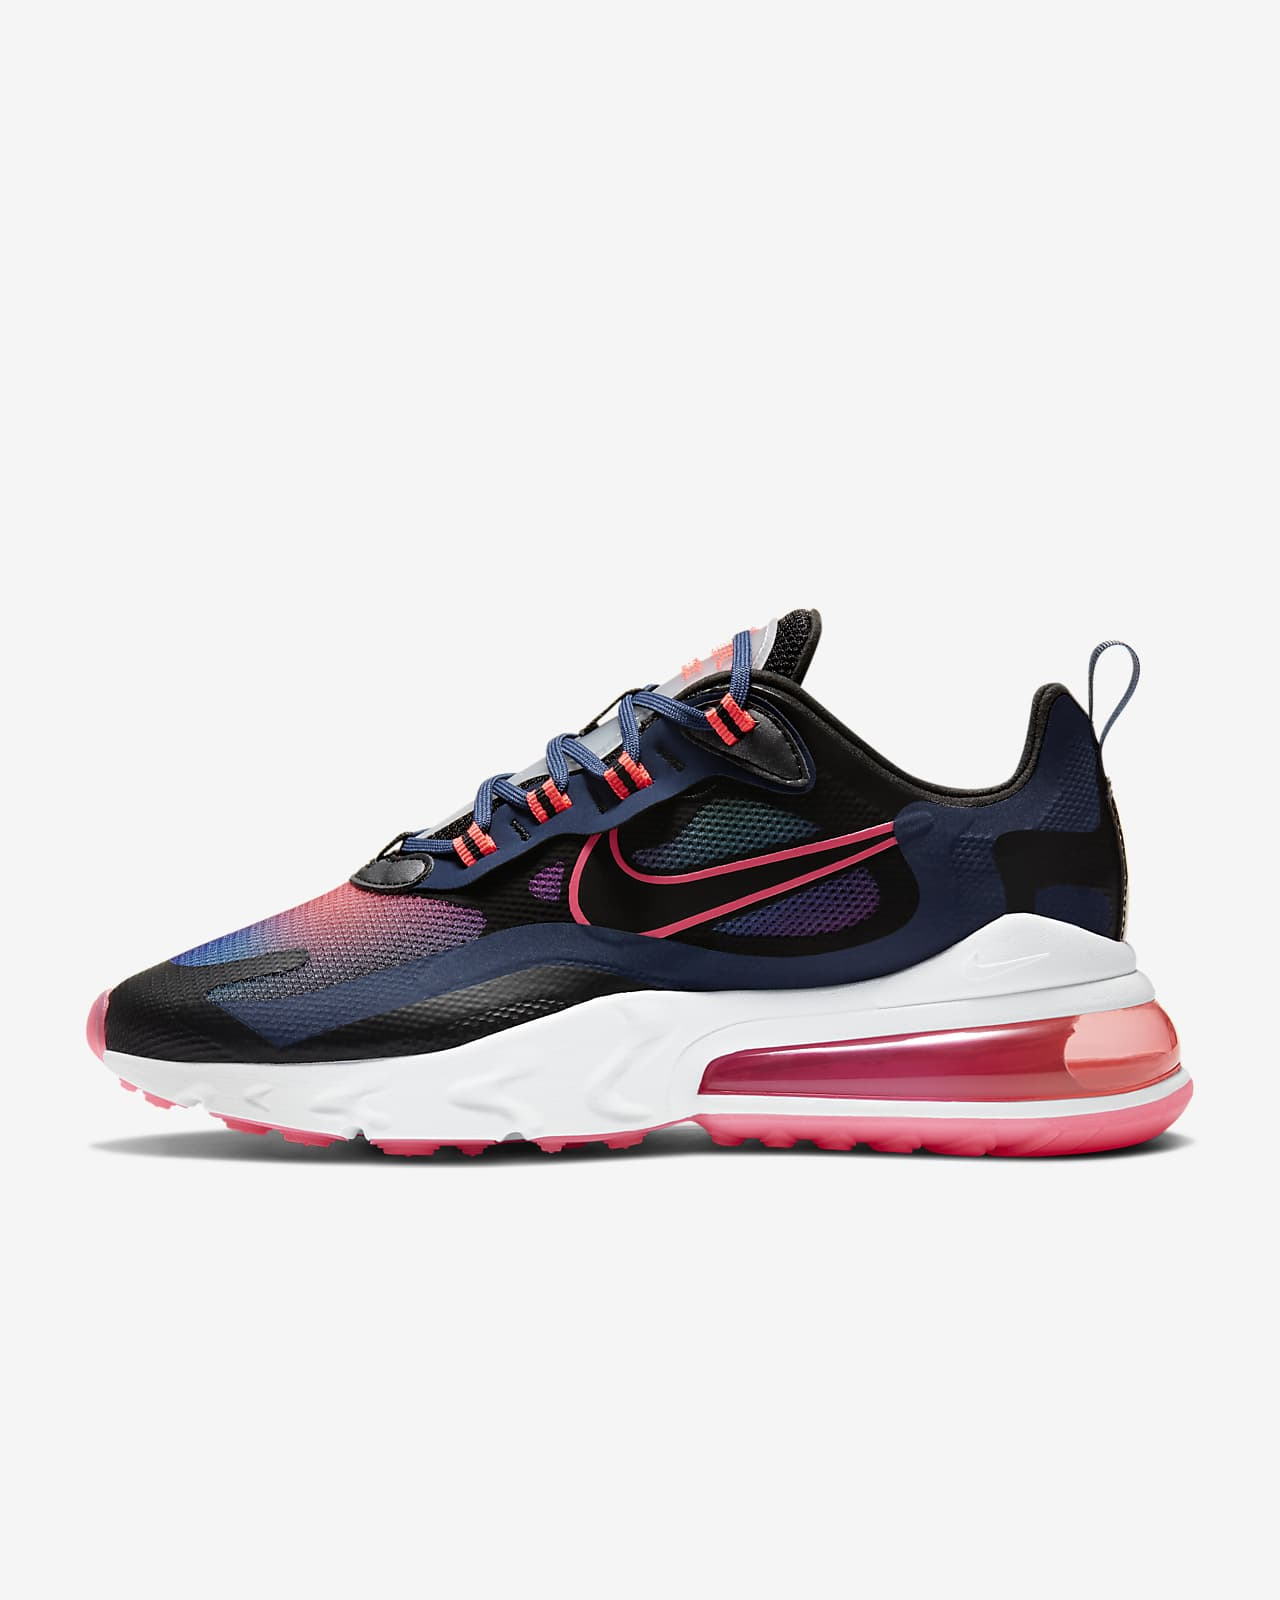 Nike Air Max 270 React SE Women's Shoe